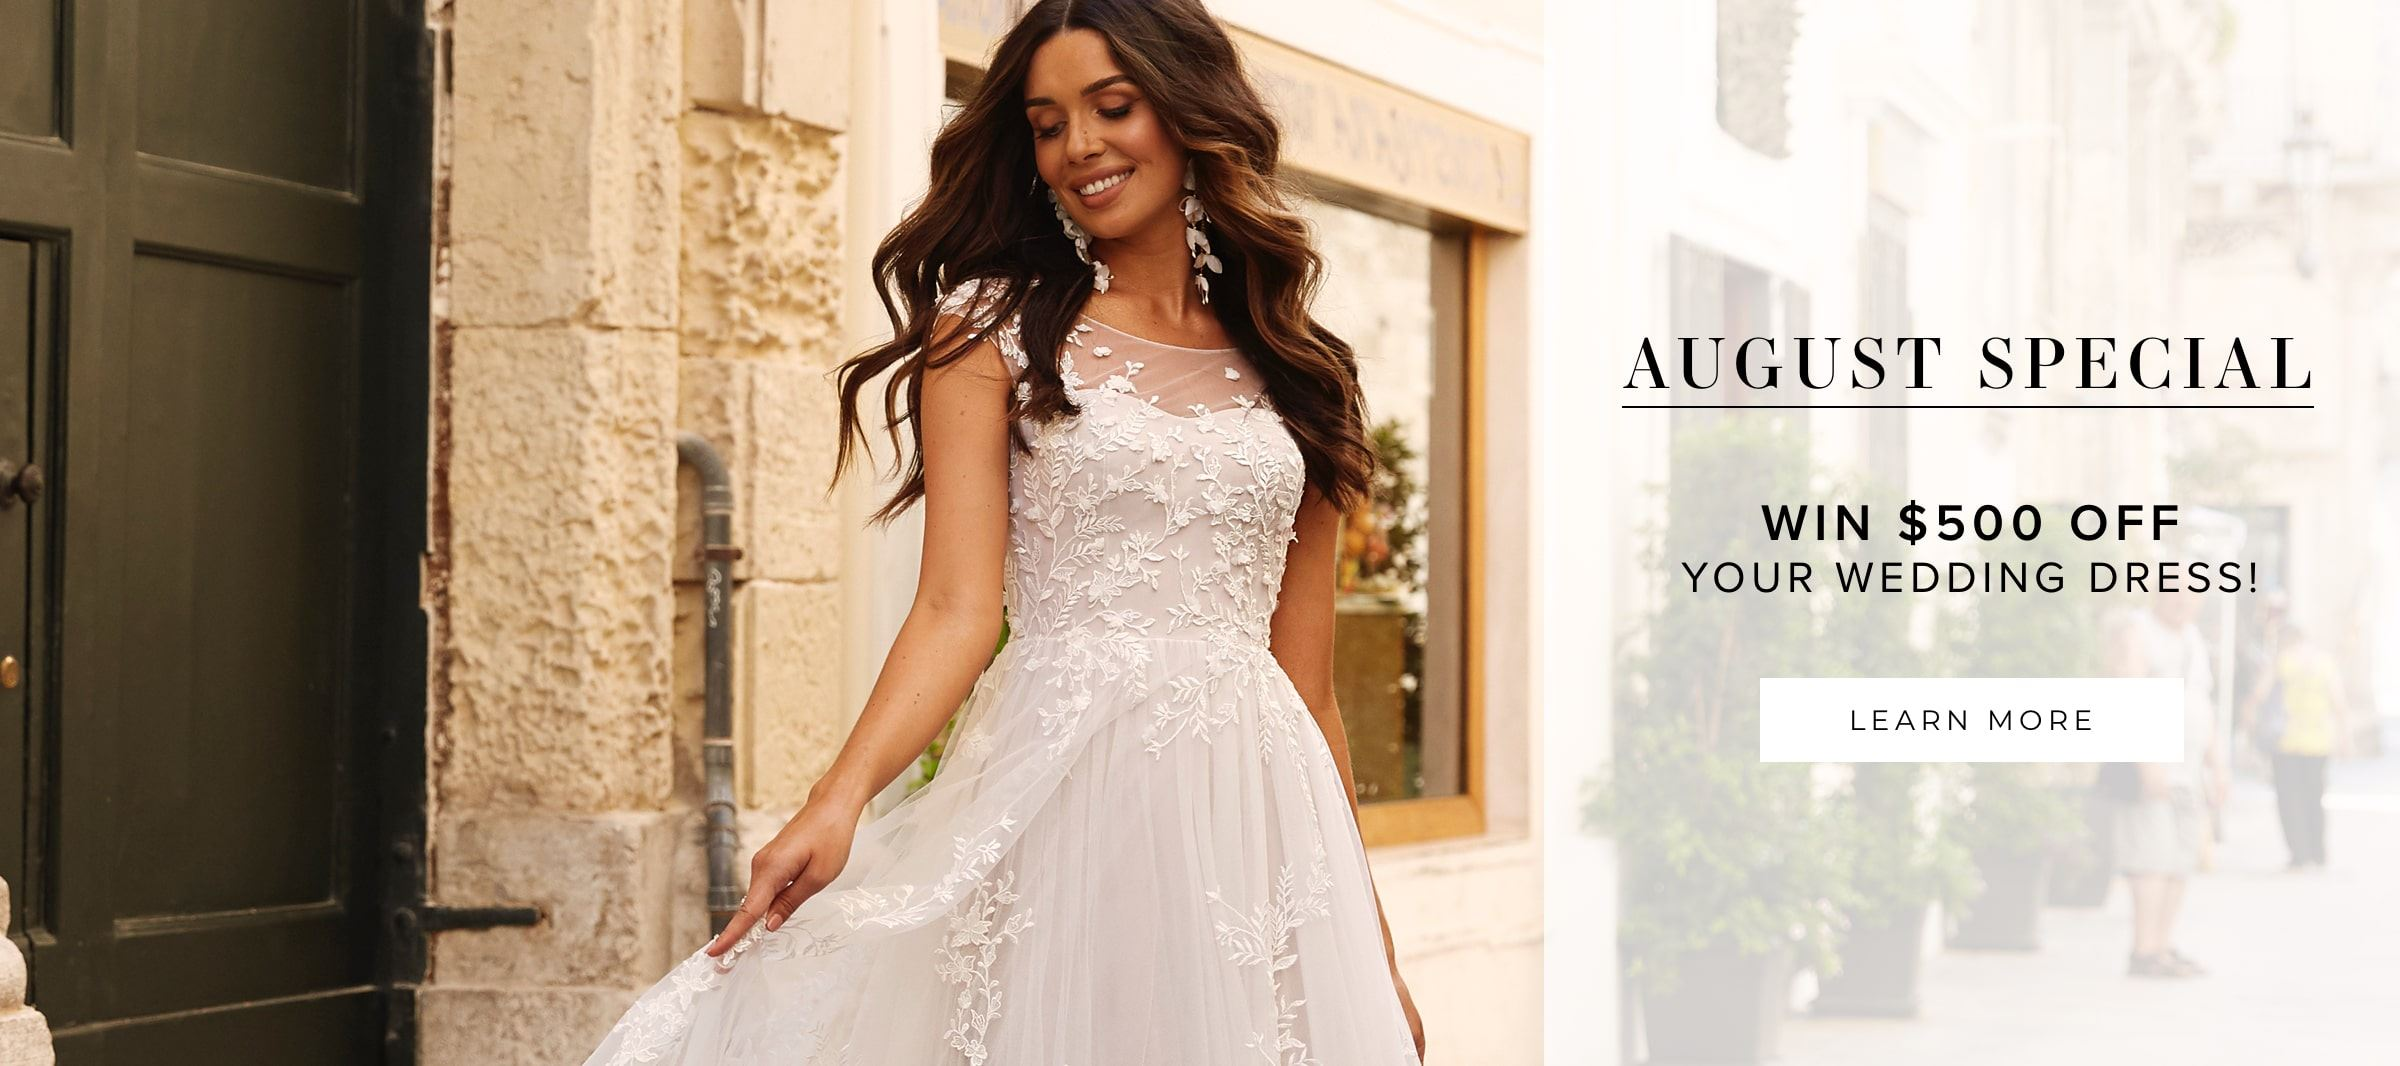 August Special Event At Bridal Impressions